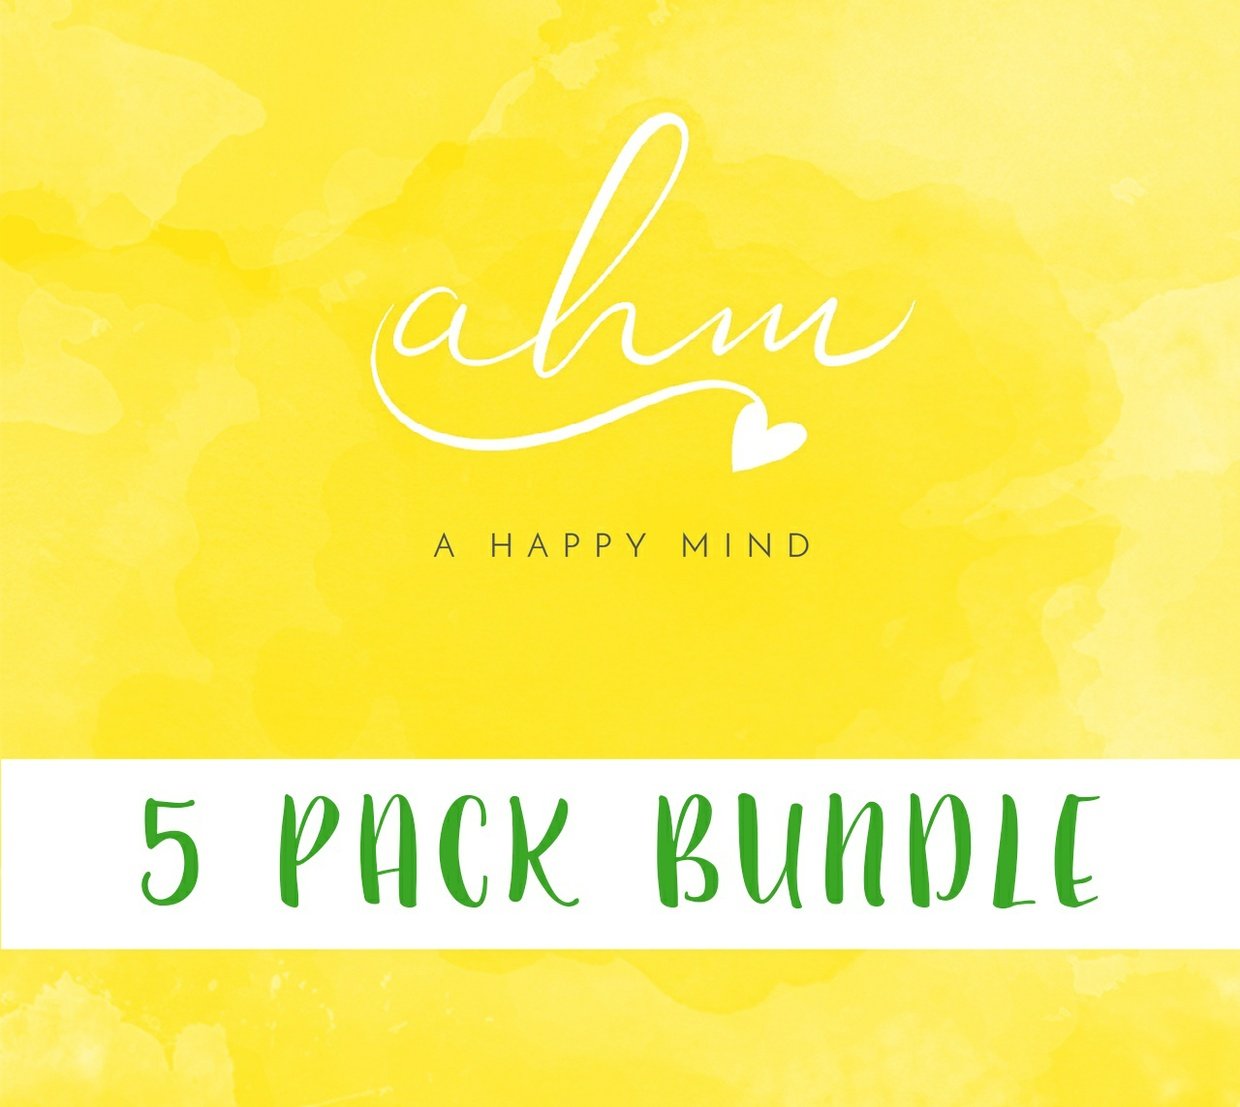 5 Pack Bundle